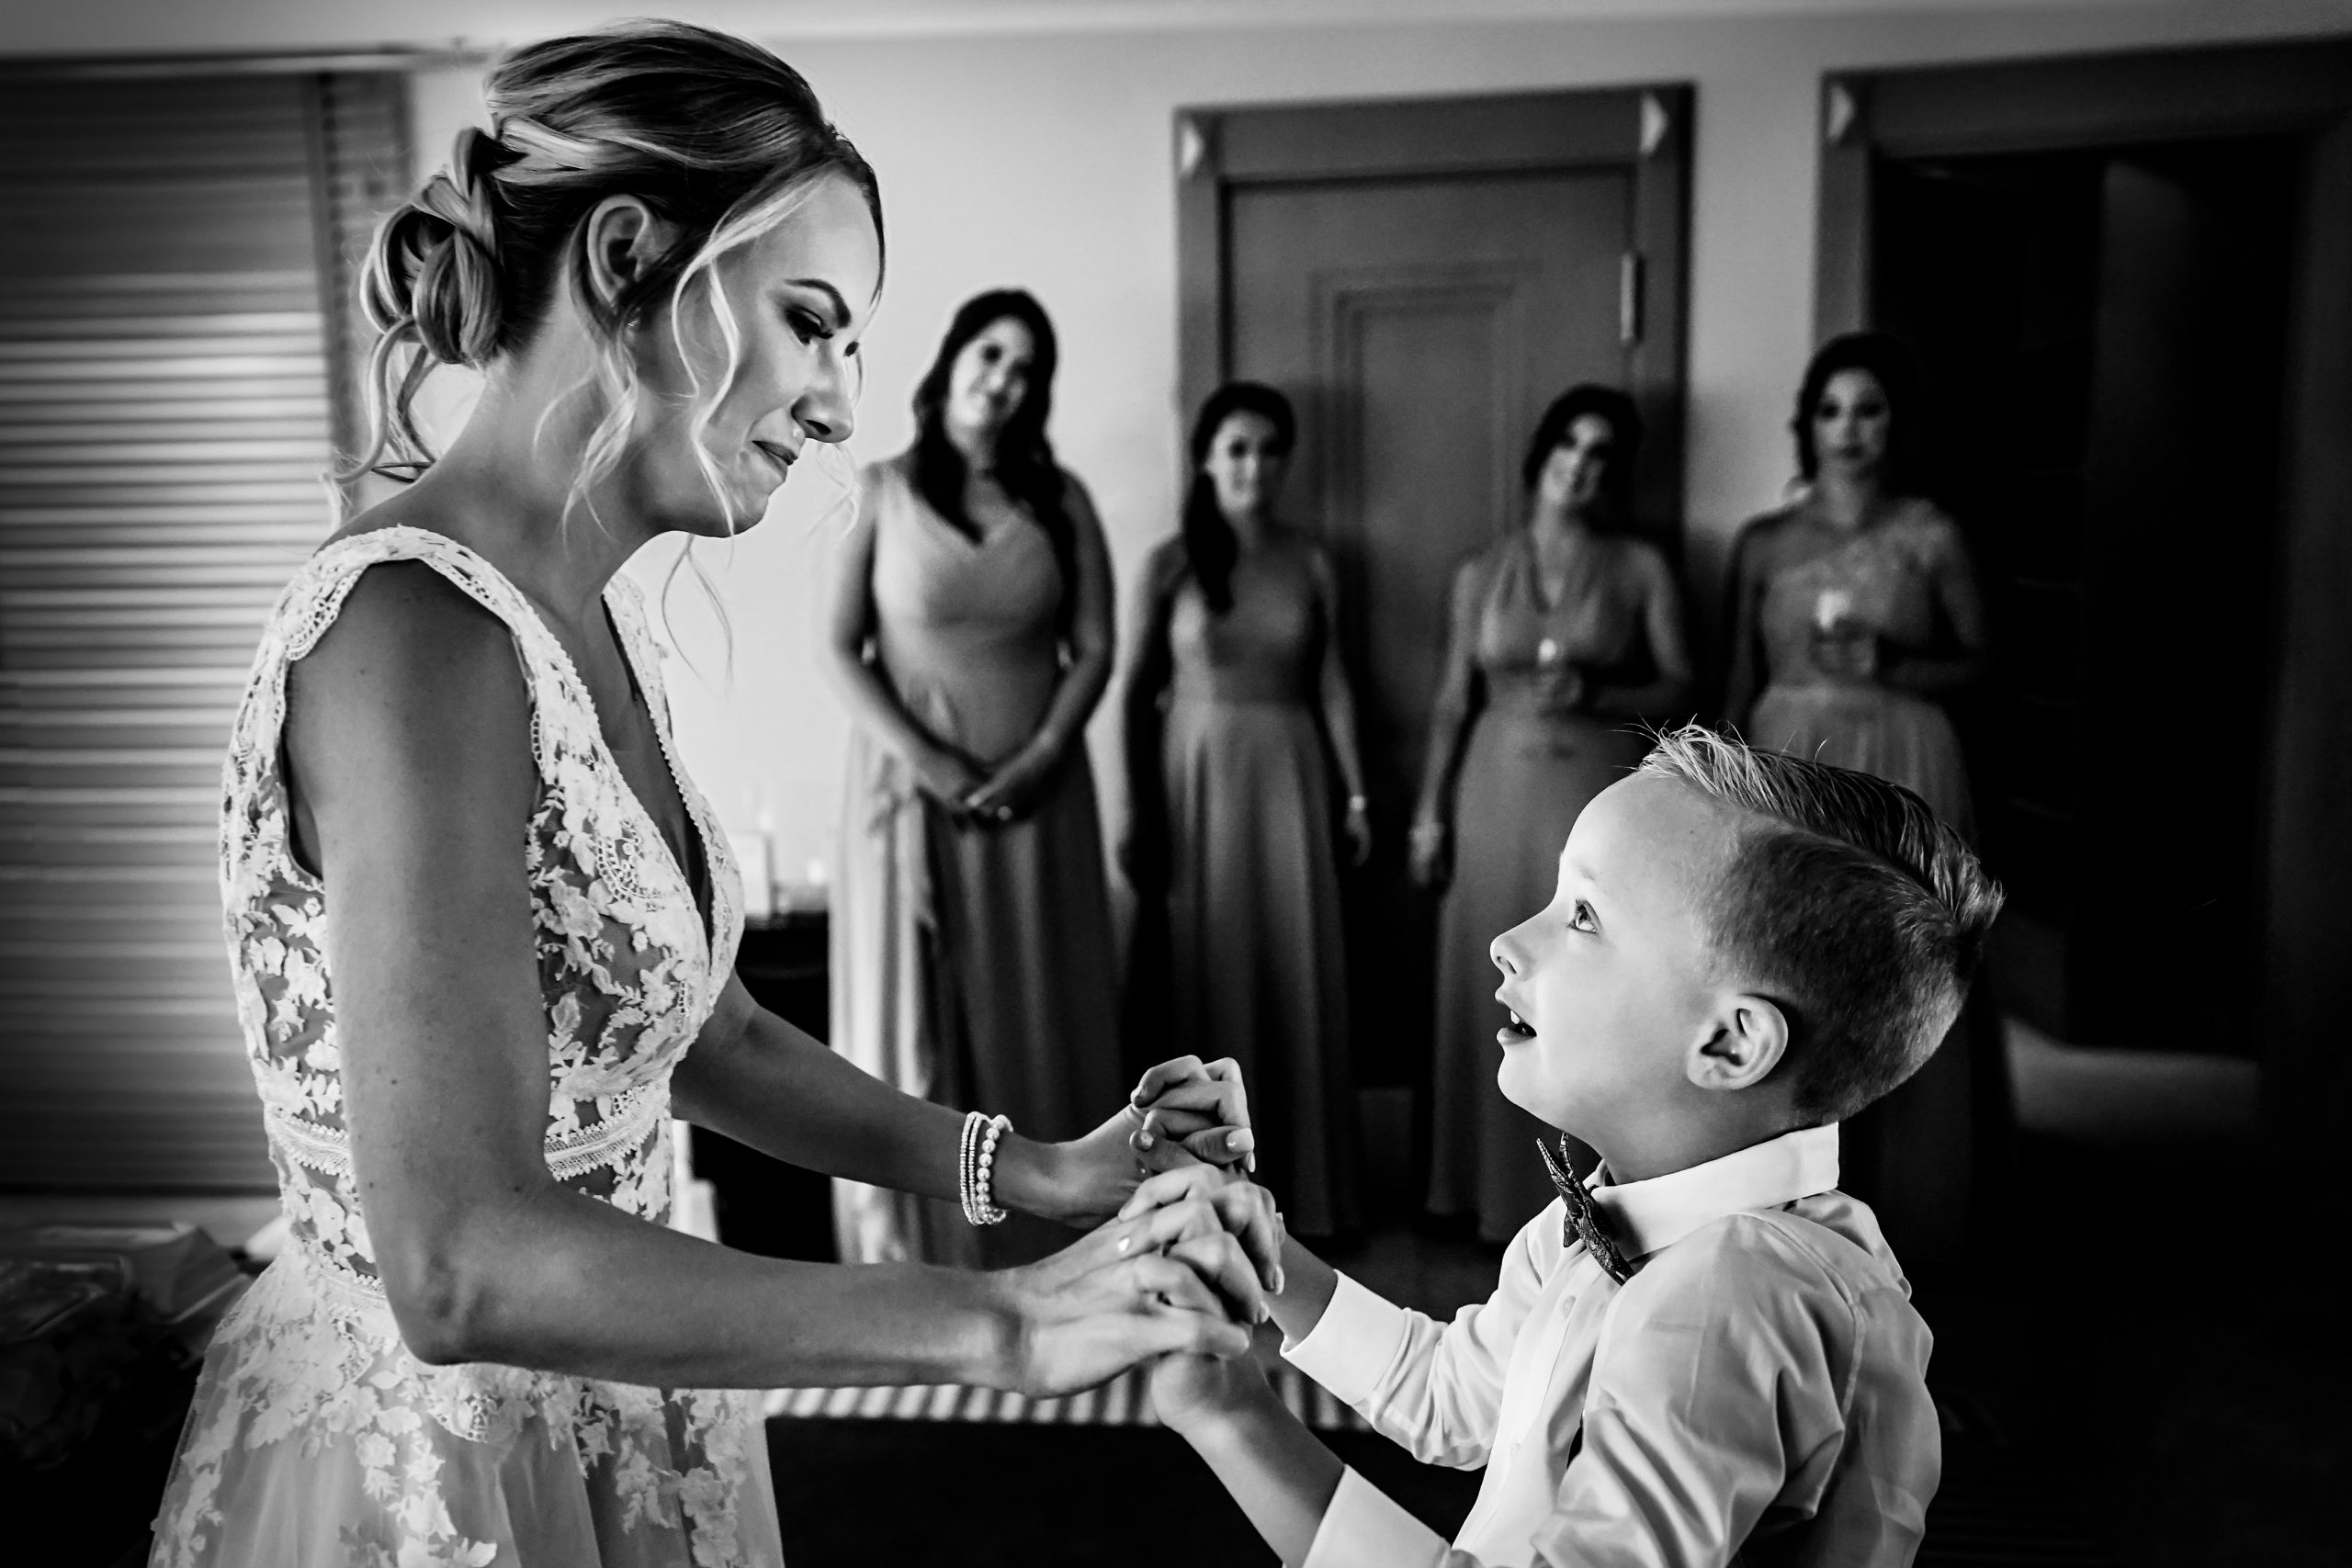 Boy holds his mother's hands as they share a moment before the wedding.